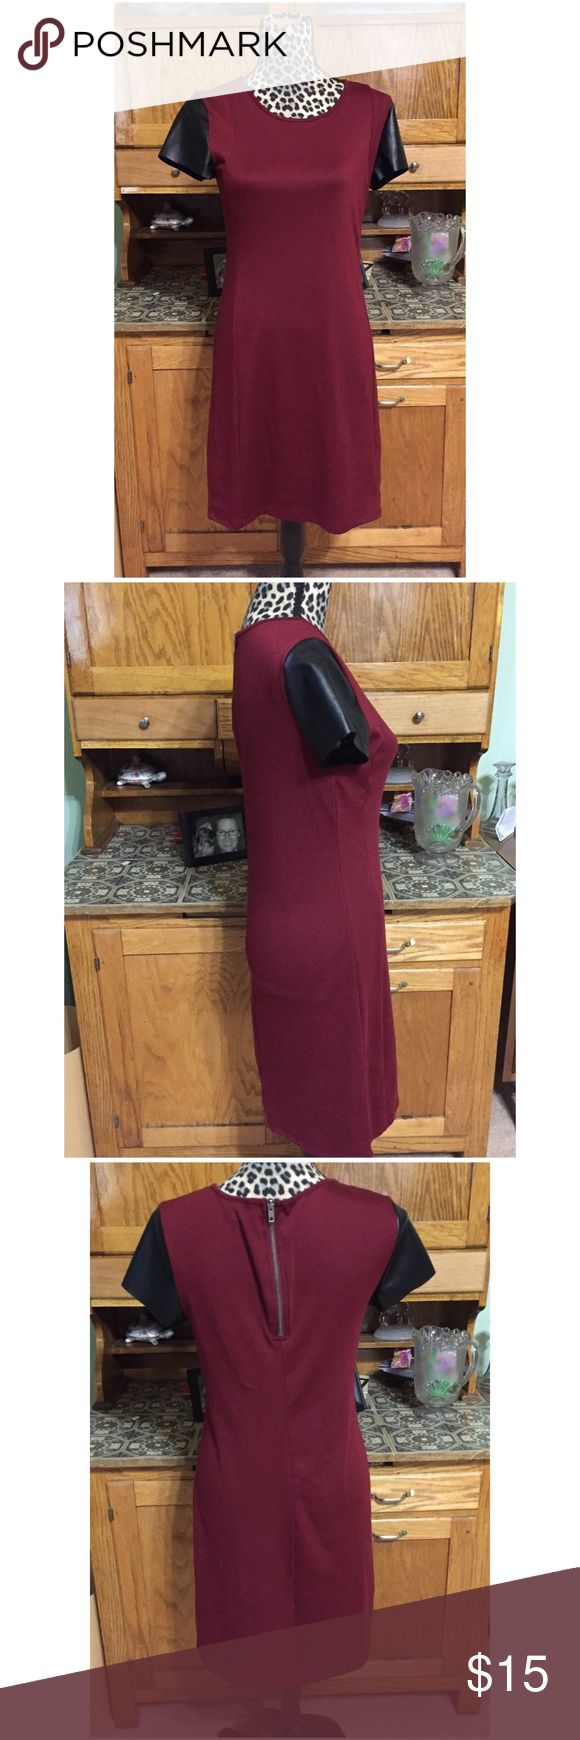 """Edgy Dress with faux leather sleeve detail Nice seasonal transition dress. Waist is about 15"""", bust is about 16"""" and length is about 36"""". All measurements taken lying flat. I am a suggested user and have a five star closet. Check my reviews and buy with confidence!  😍 Dresses"""